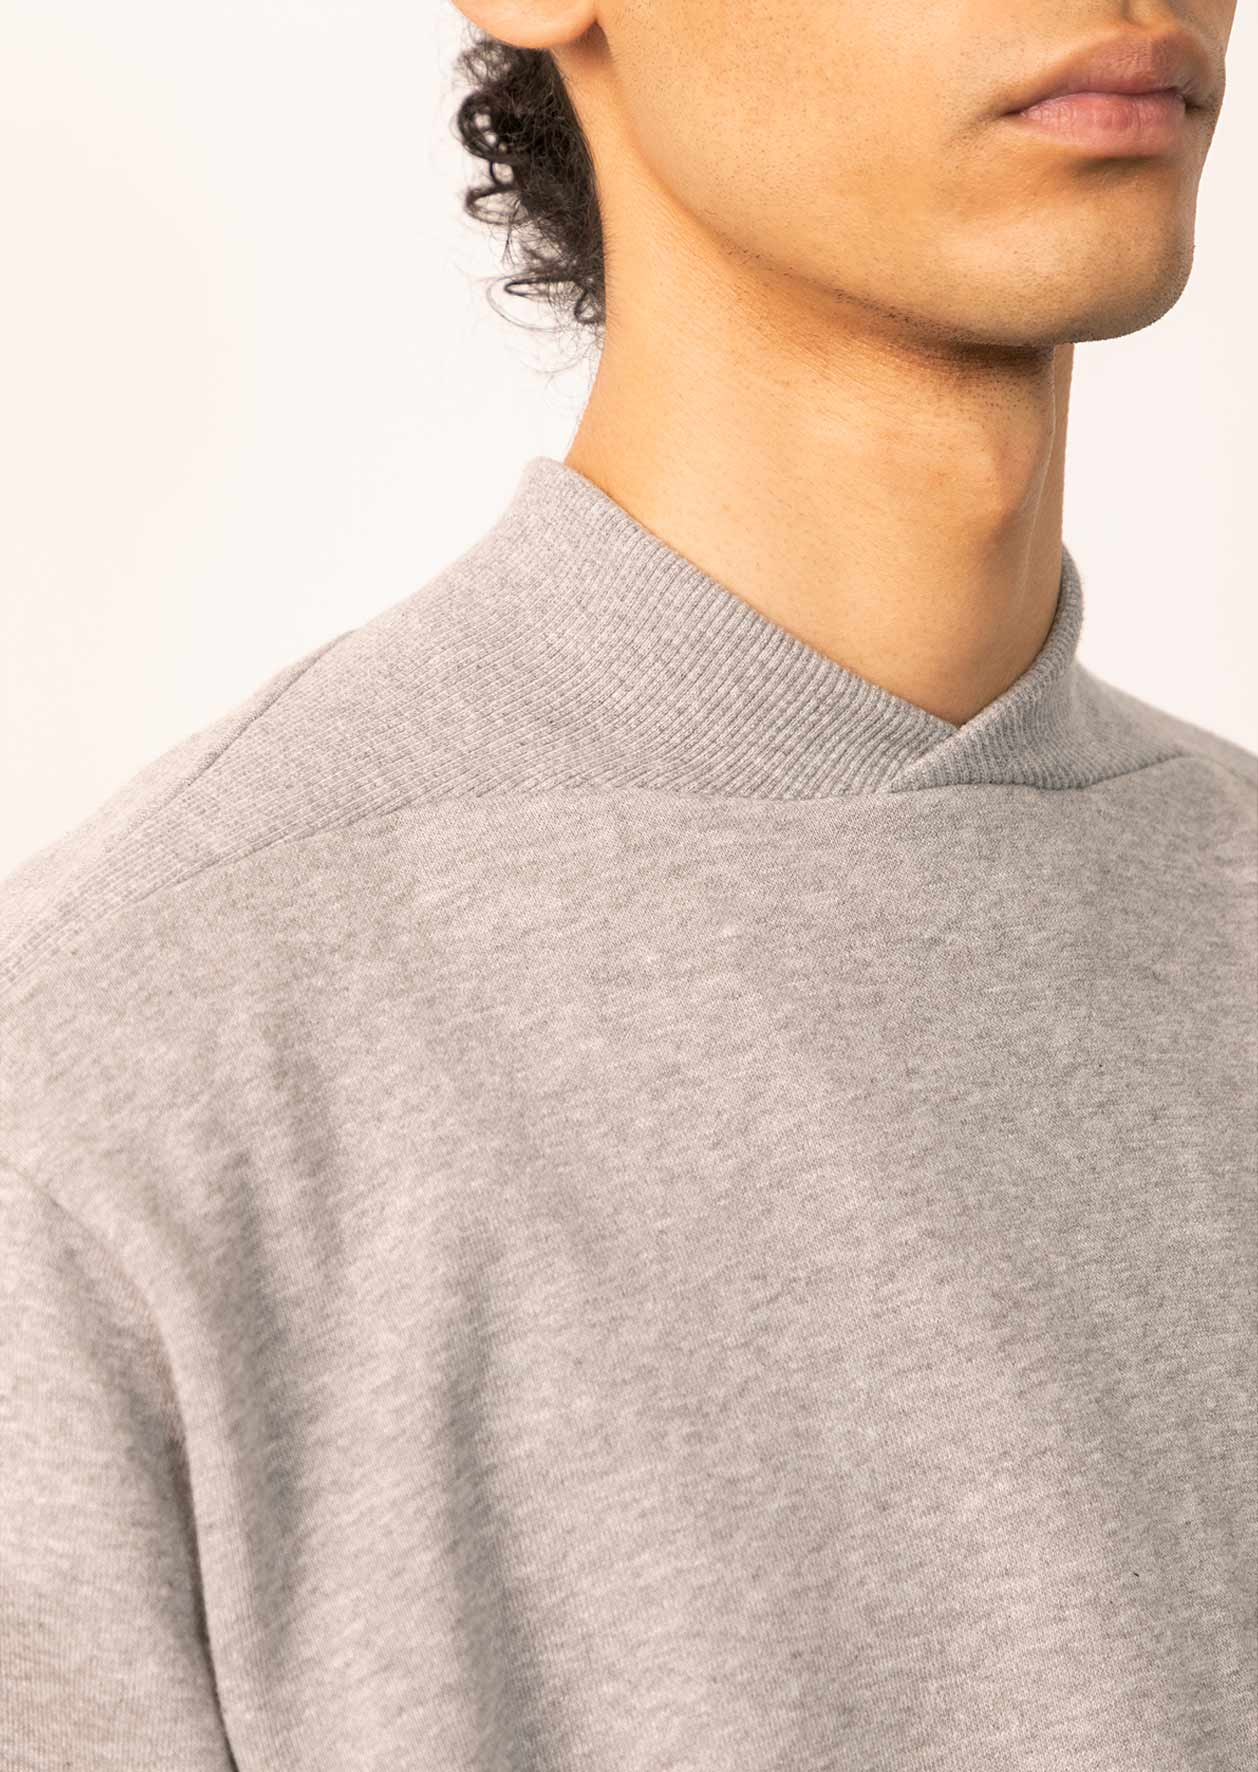 De Bonne Facture - Cyclist sweatshirt - Cotton fleece - Heathered grey